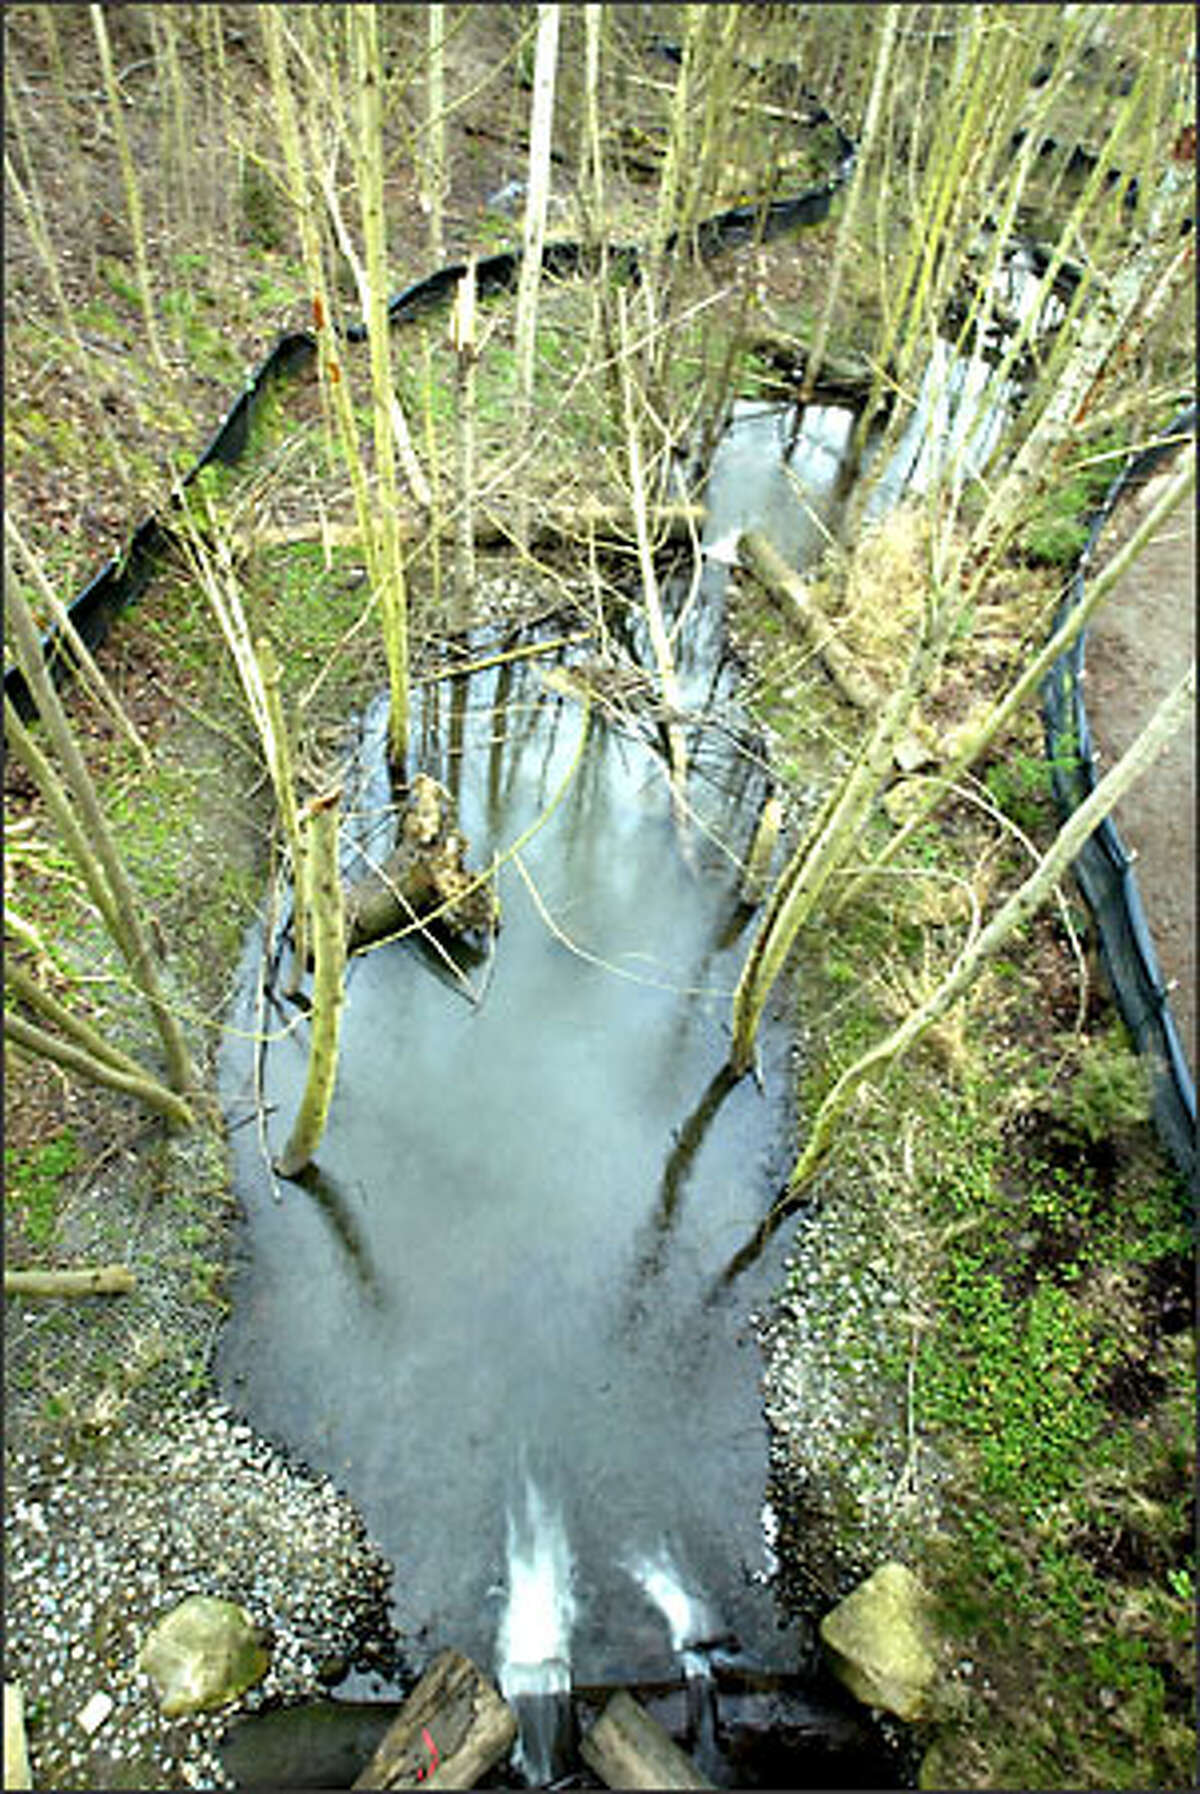 Longfellow Creek in West Seattle has been rehabilitated to support coho and chum salmon. We'd suggest starting at Dragonfly Garden at 28th and Dakota, and then walking south along the trail in early November for the best chance of spotting the salmon.